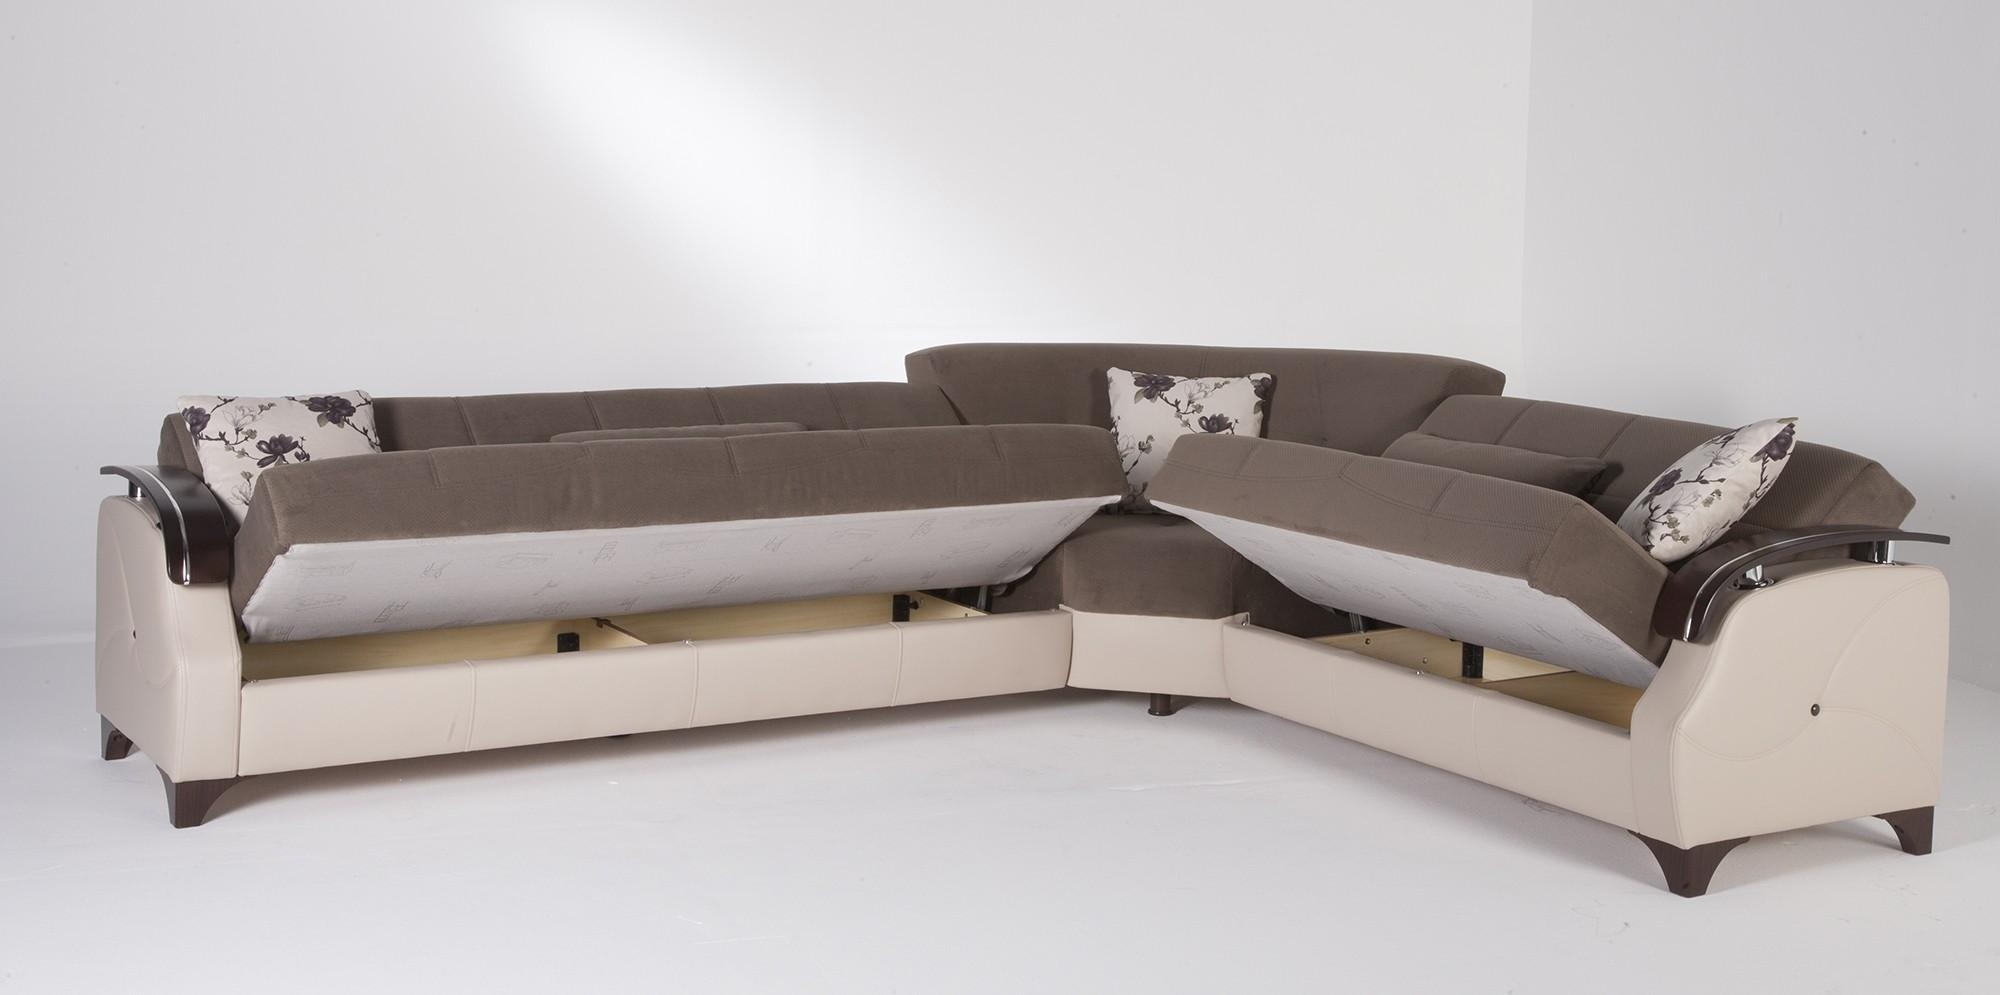 Awesome Macys Sleeper Sofa Great Cheap Furniture Ideas With Macys With Awesome Sofa (View 8 of 20)